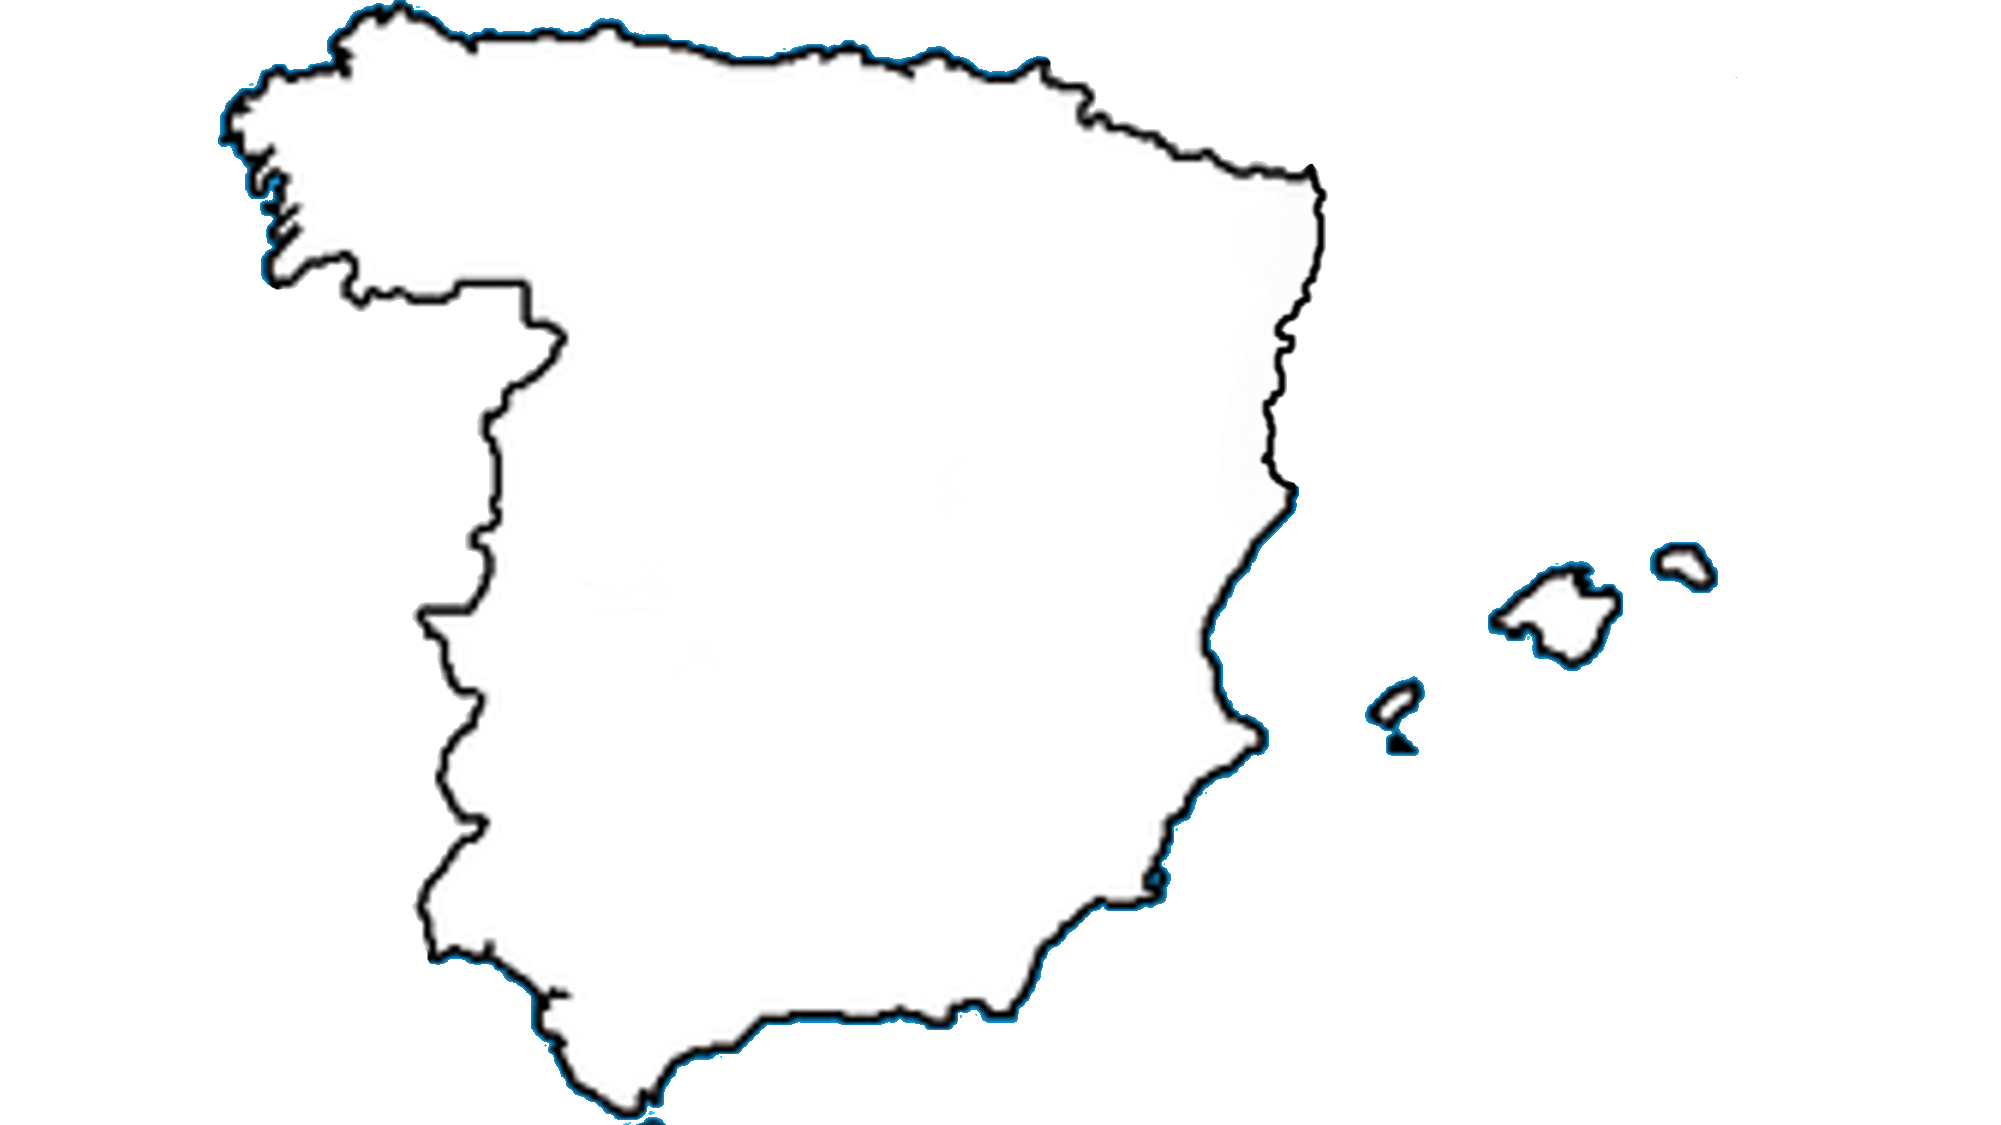 Map Of Spain Catalonia.File Blank Map Of Spain Without Catalonia Png Wikimedia Commons